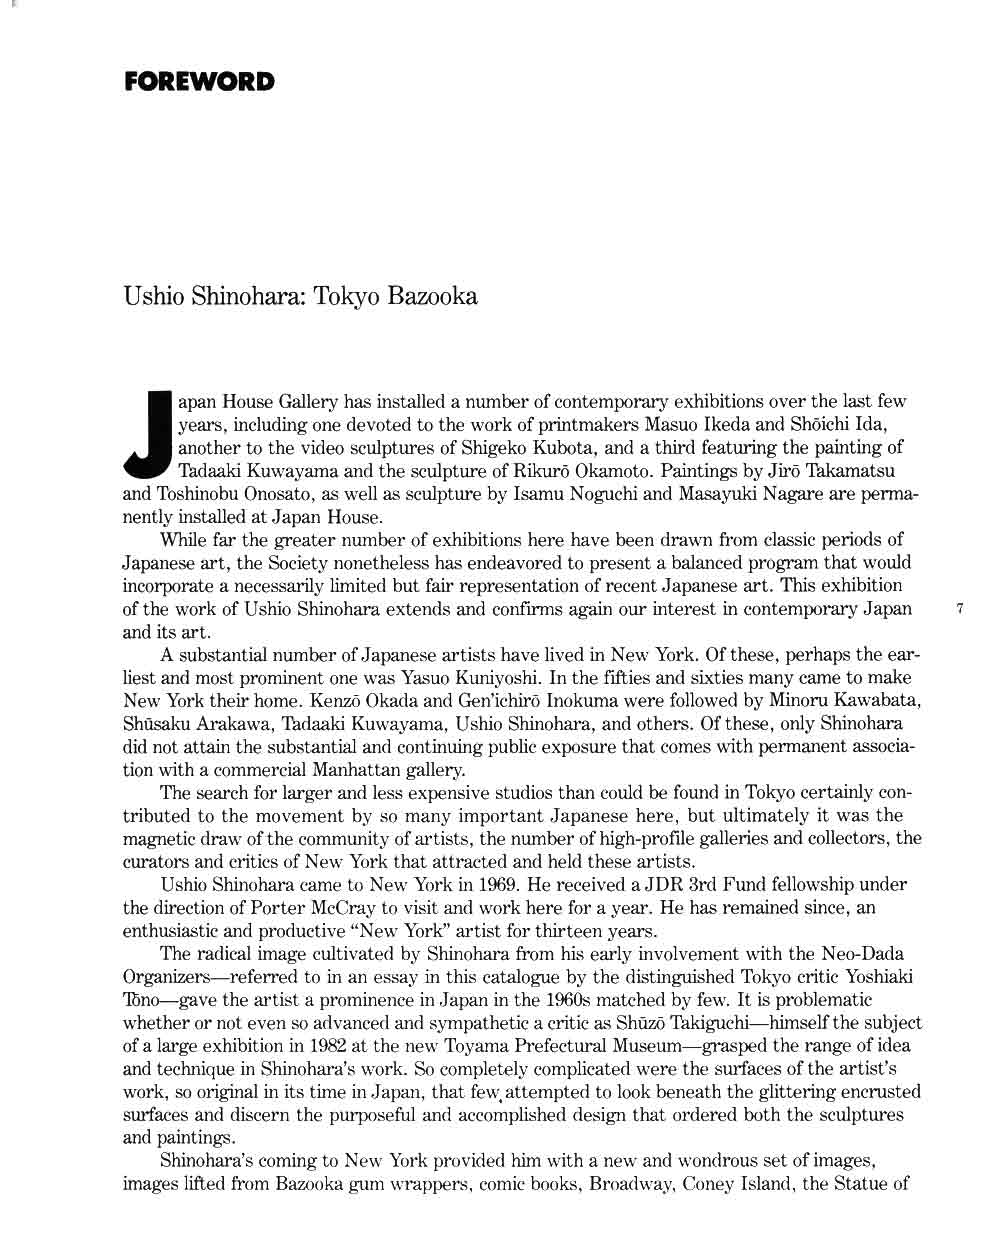 009 Ushio Shinohara Tokyo Bazooka Essay Pg 1 Example How To Quote An Article Impressive In Reference Apa Title Online Full